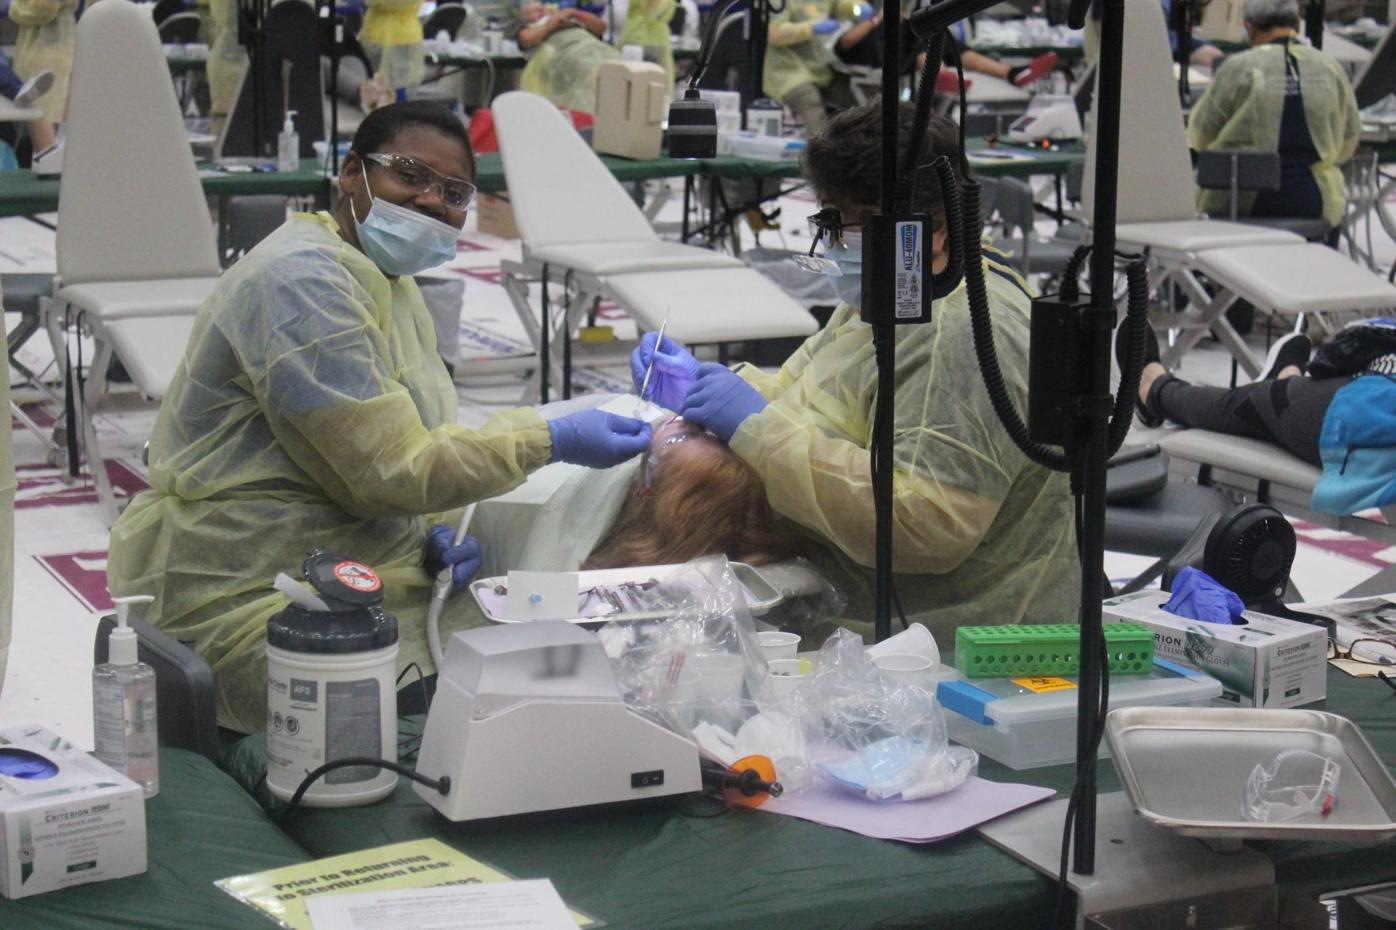 Mission of Mercy assists nearly 1,200 dental patients